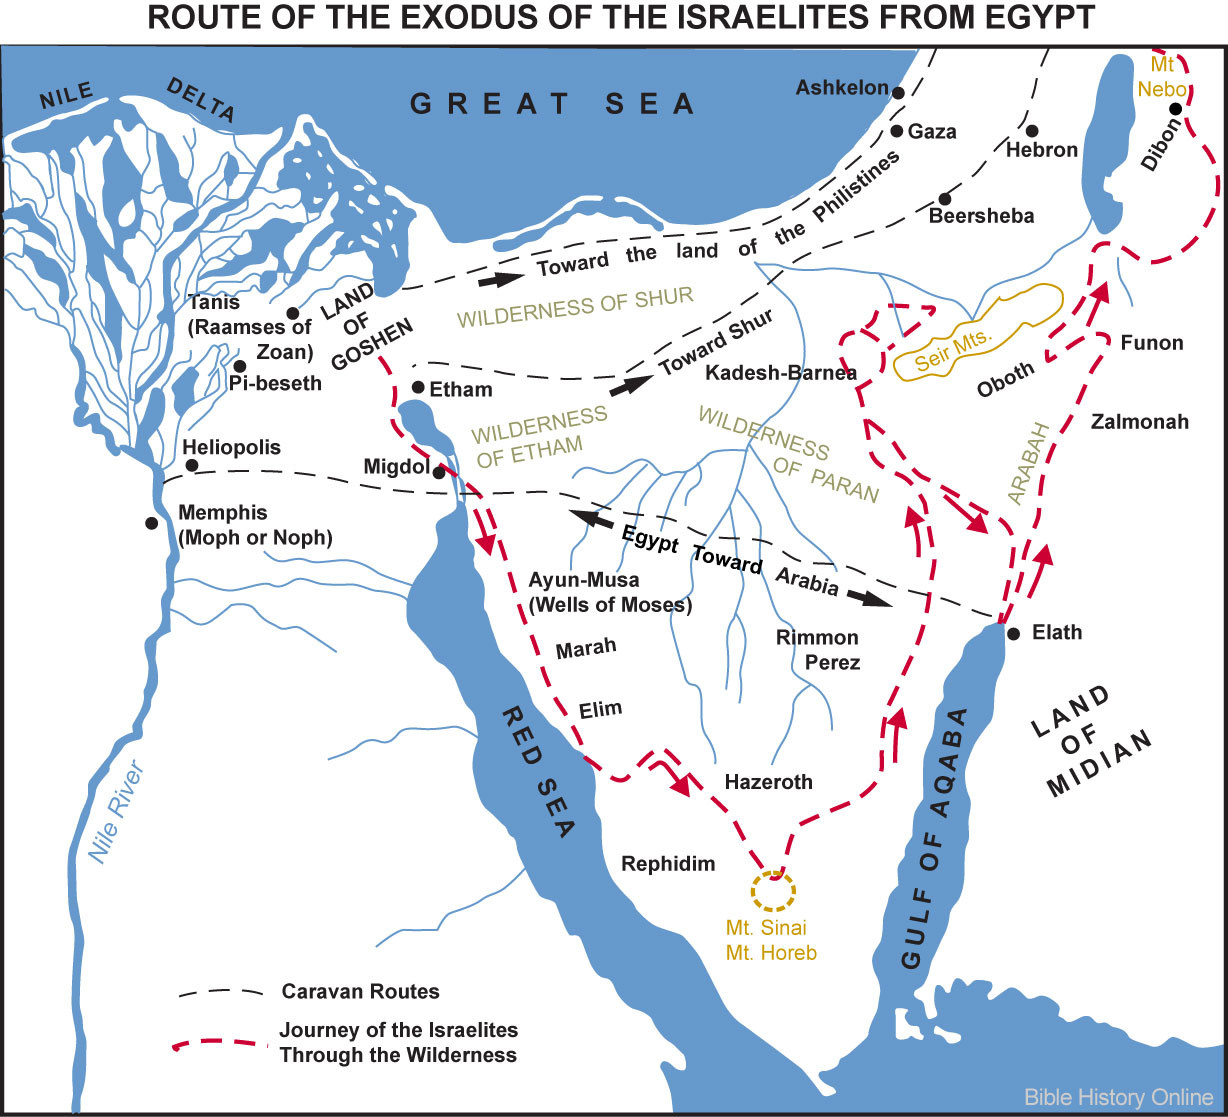 Printable Map Of 12 Tribes Of Israel Best Of Map Of The Route Of The Exodus Of The Israelites From Egypt Bible